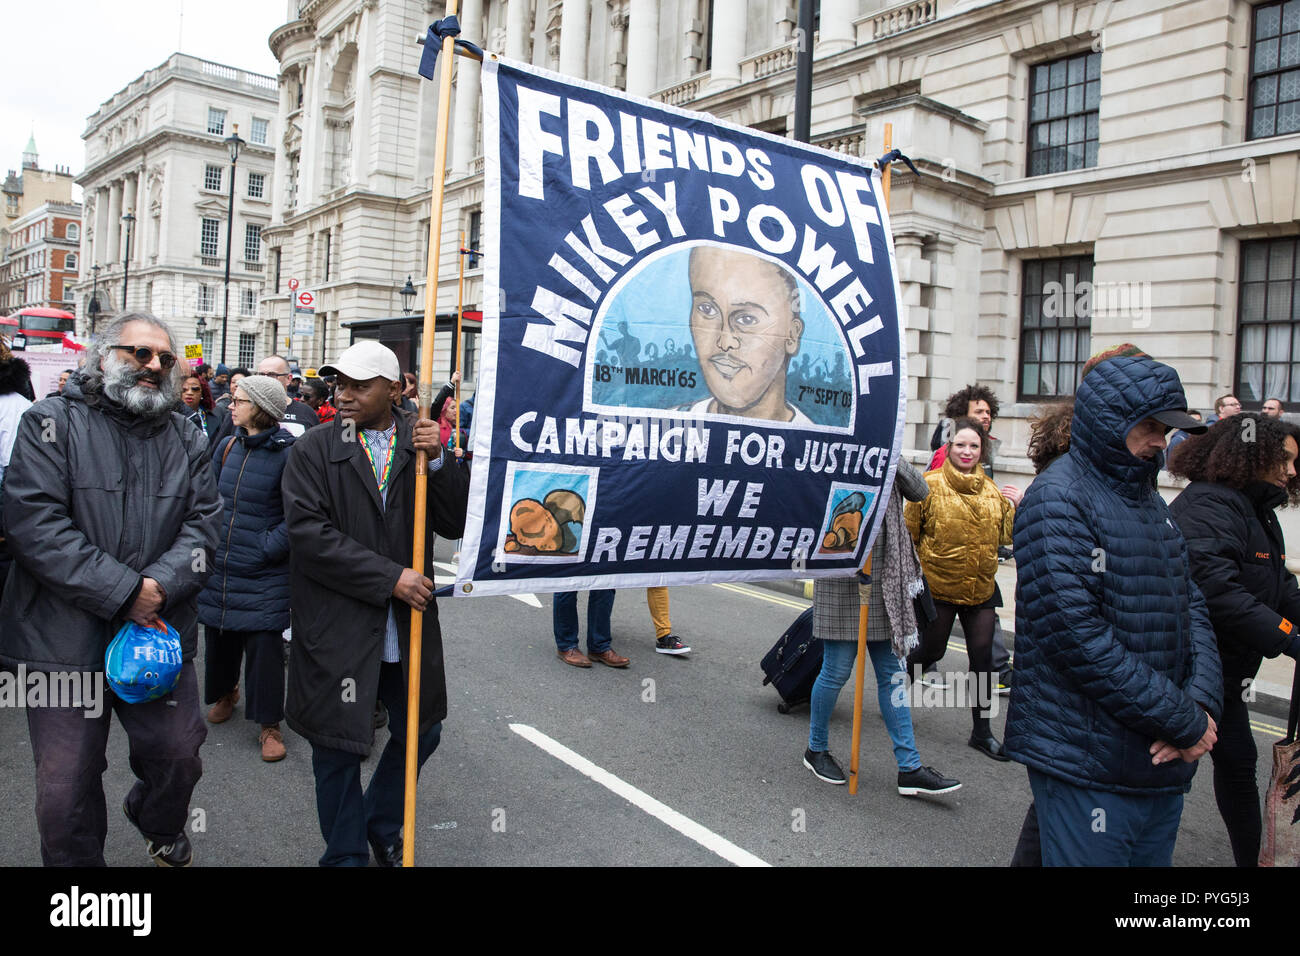 London, UK. 27th October, 2018. Tipper Naphtali, cousin of Mikey Powell, marches with campaigners from the United Families and Friends Campaign (UFFC) taking part in the 20th annual procession to Downing Street in remembrance of family members and friends who died in police custody, prison, immigration detention or secure psychiatric hospitals. Credit: Mark Kerrison/Alamy Live News - Stock Image